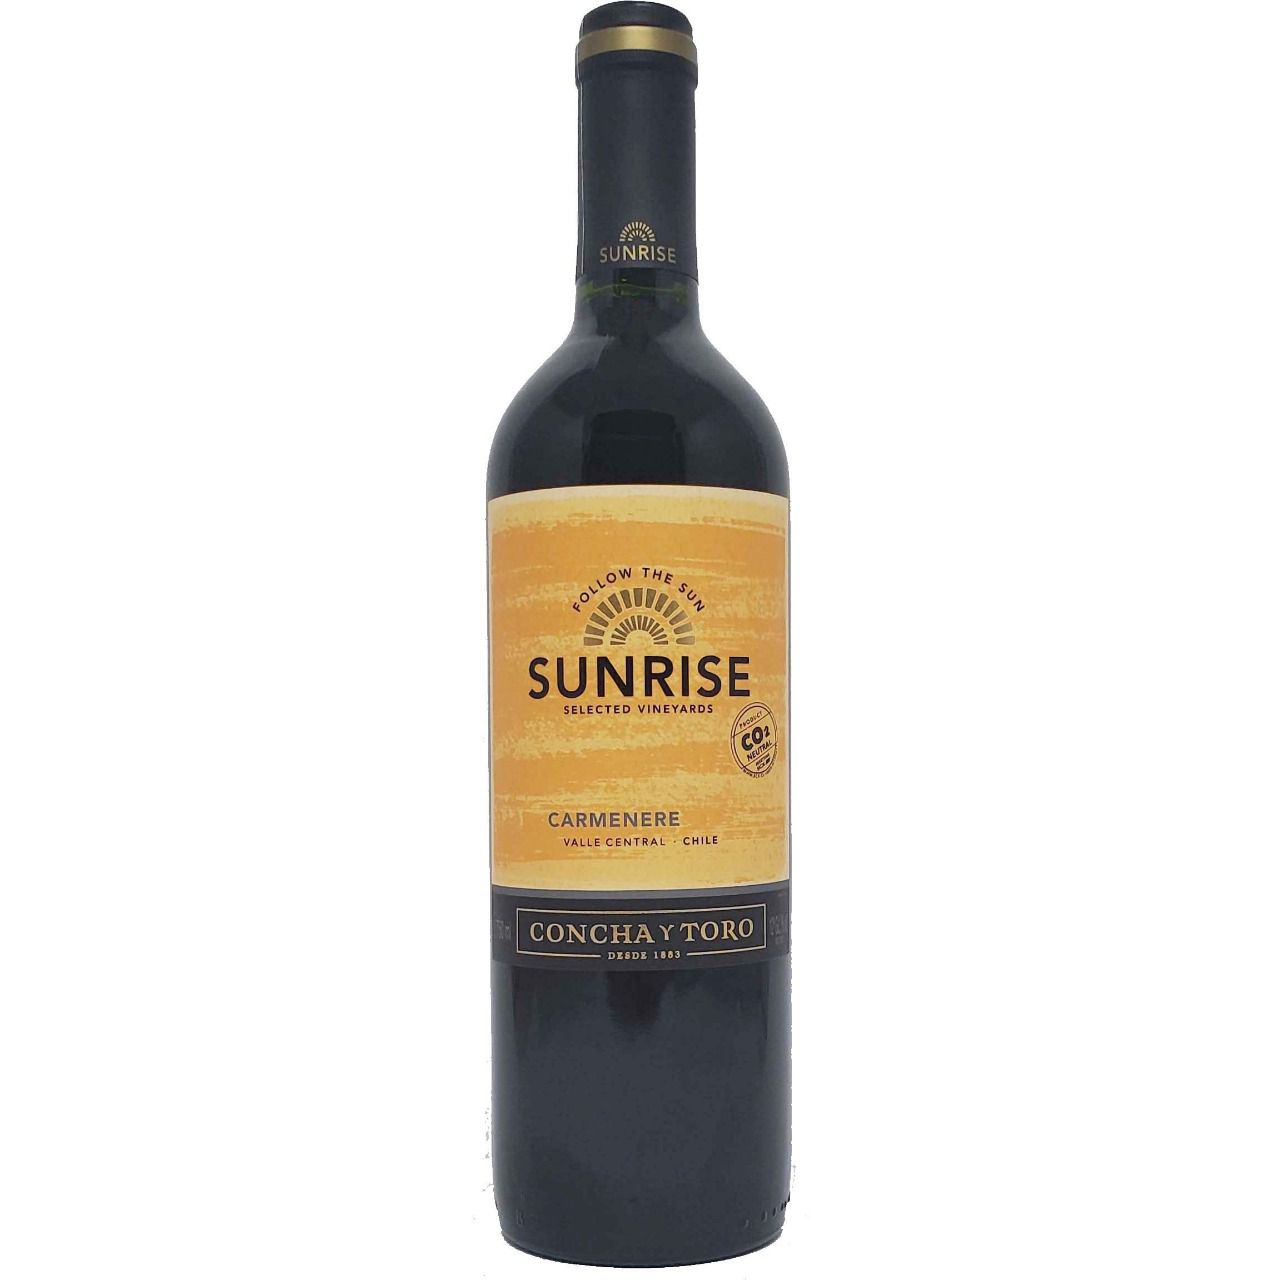 Vinho Tinto Sunrise Selected Vineyards Concha y Toro Carménère  - 750ml -